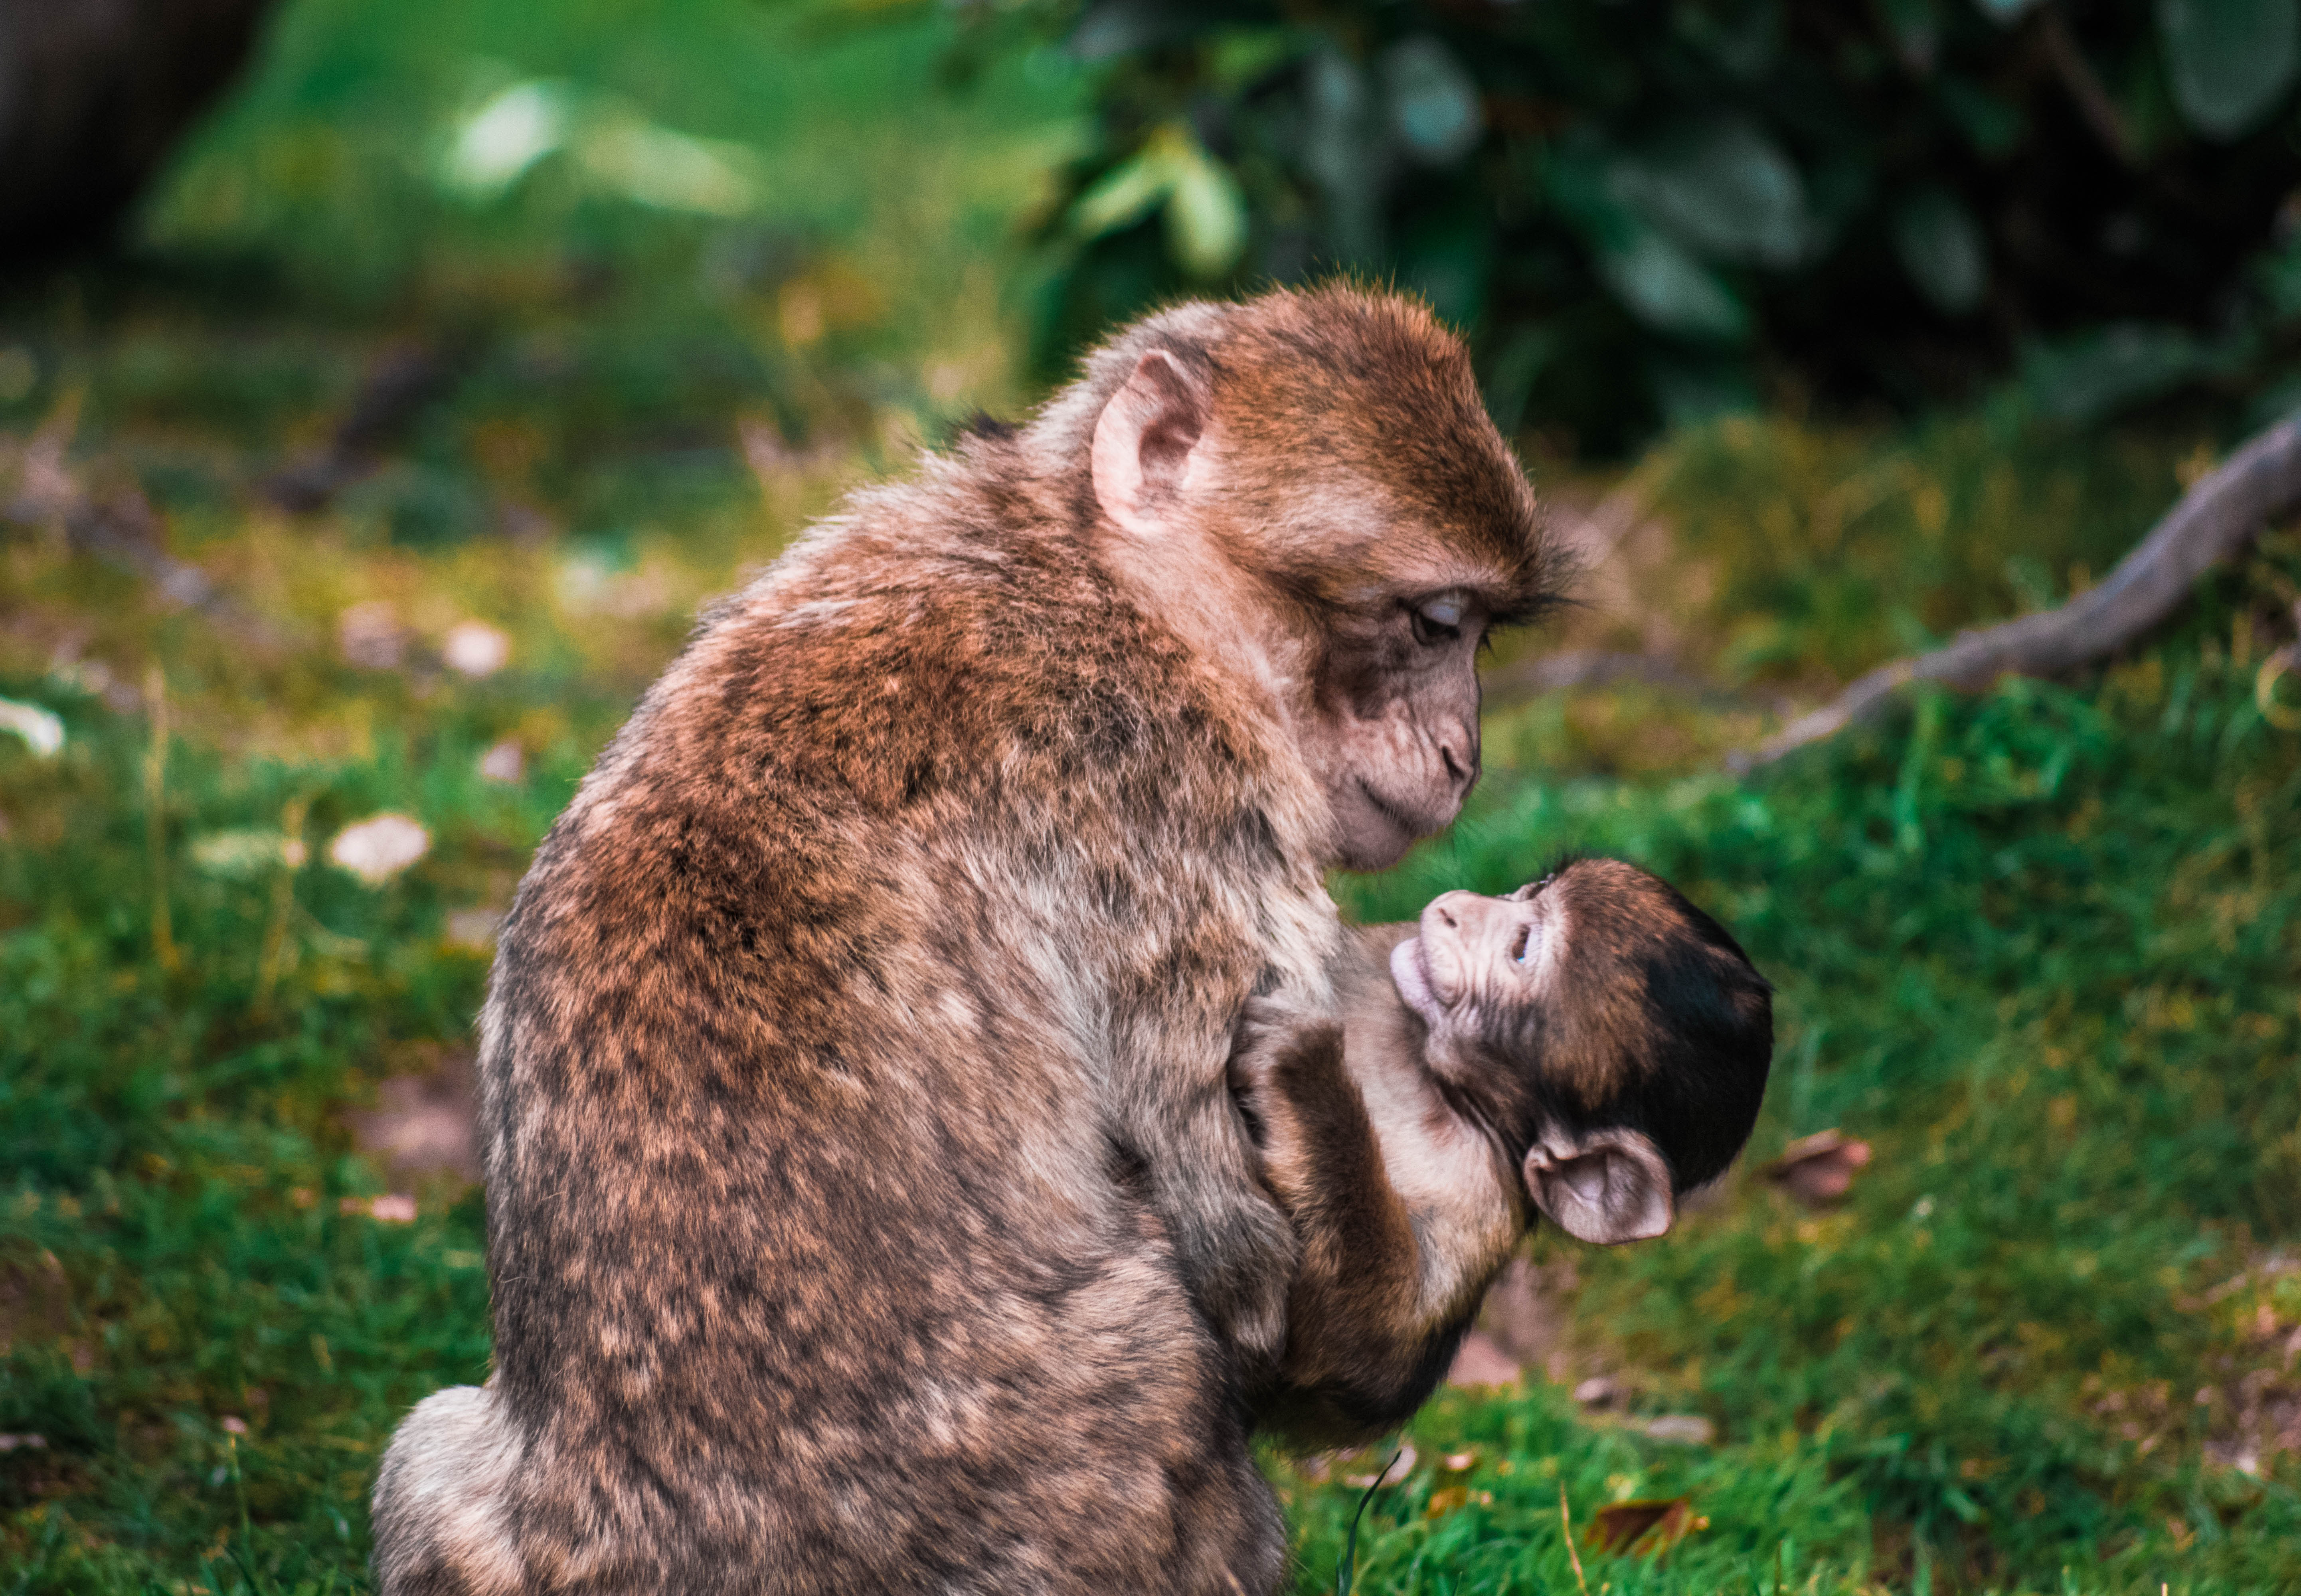 Images Of Hd Love Wallpapers Baby Monkey Monkey Animal And Monkey Family Hd Photo By